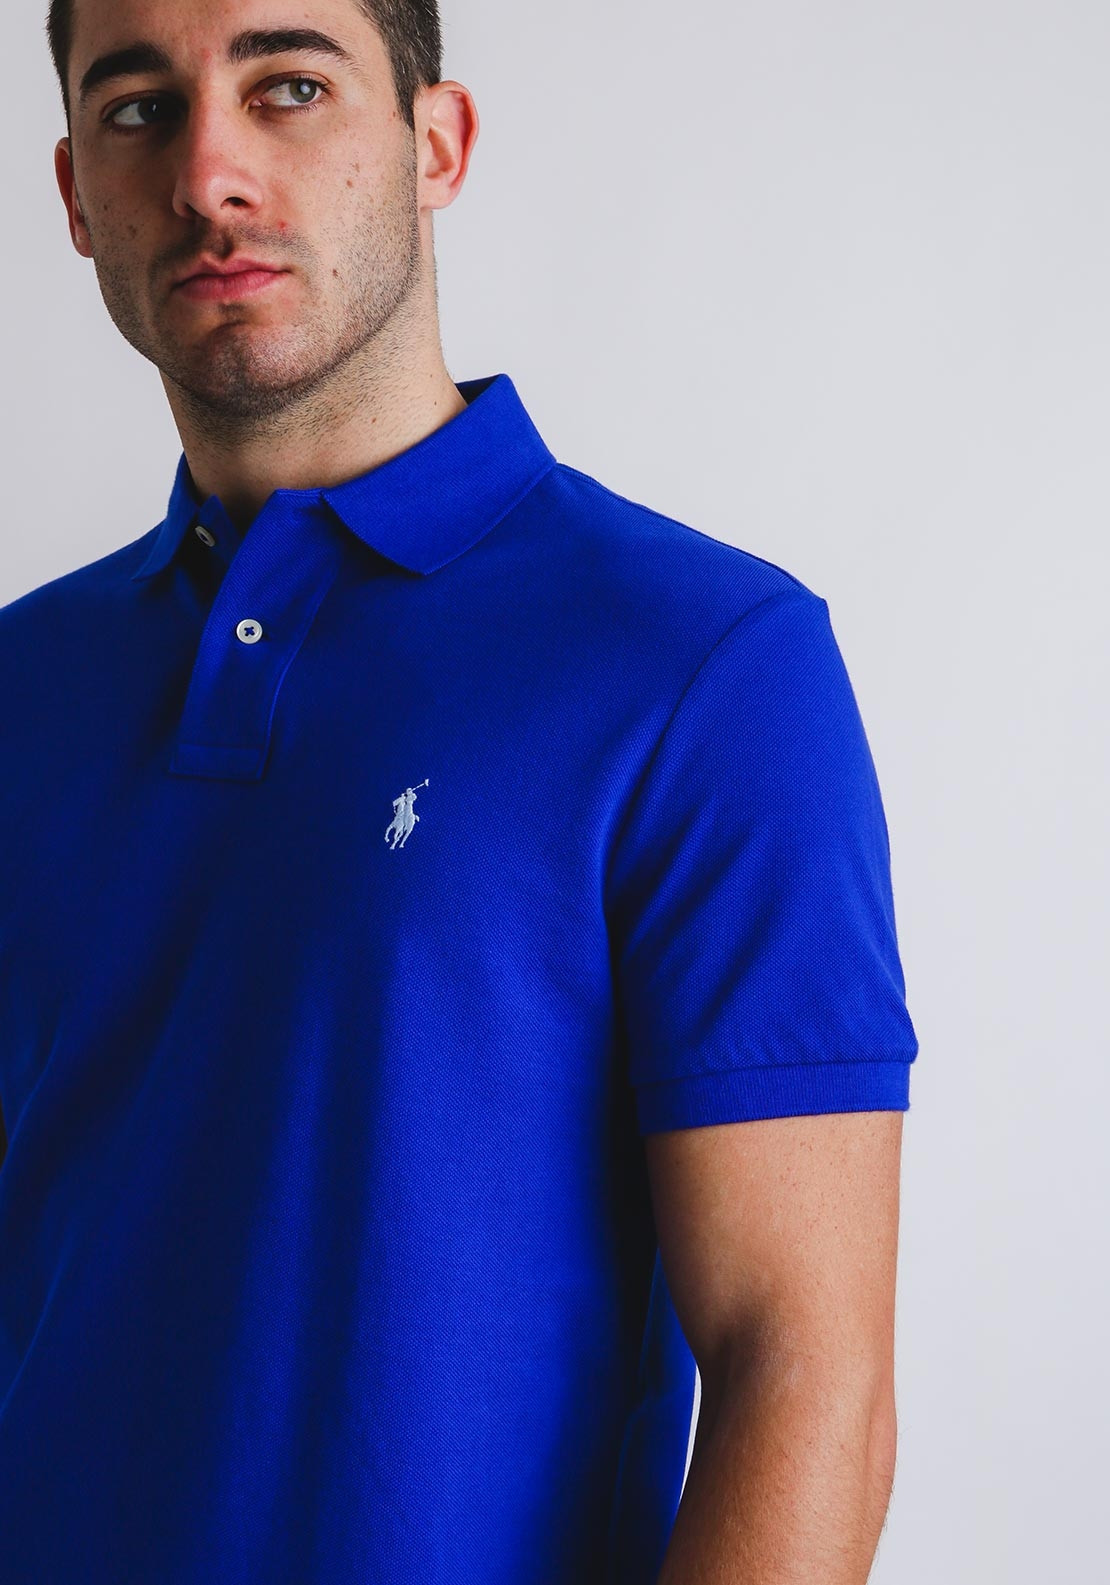 2f325c0b2b Ralph Lauren Custom Slim Fit Polo Shirt,Sea. Be the first to review this  product